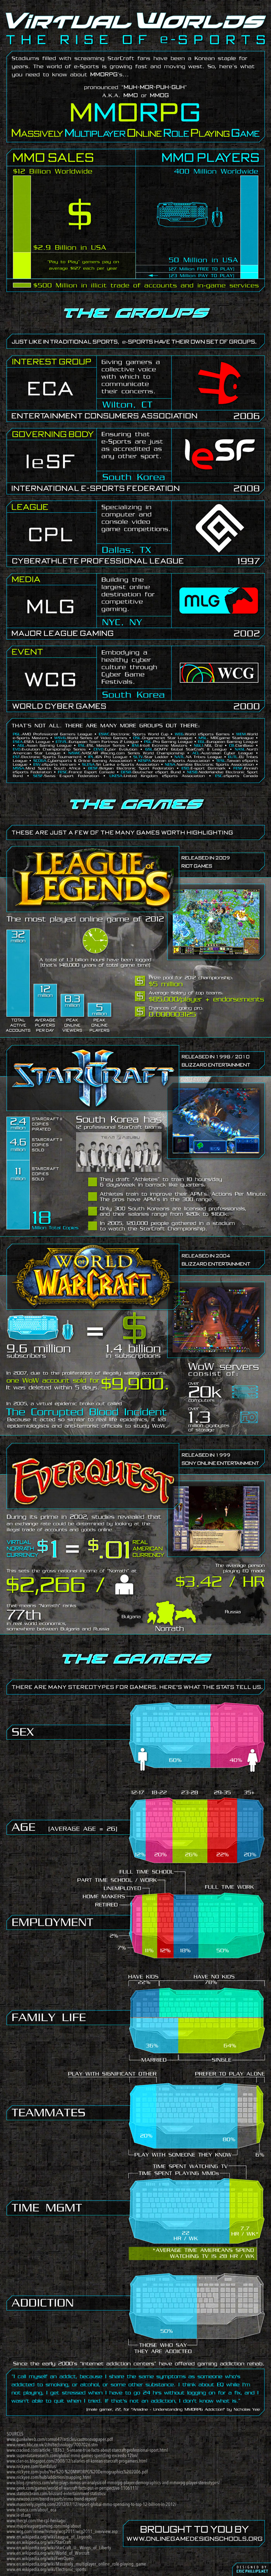 Virtual Worlds: The Rise of e-Sports